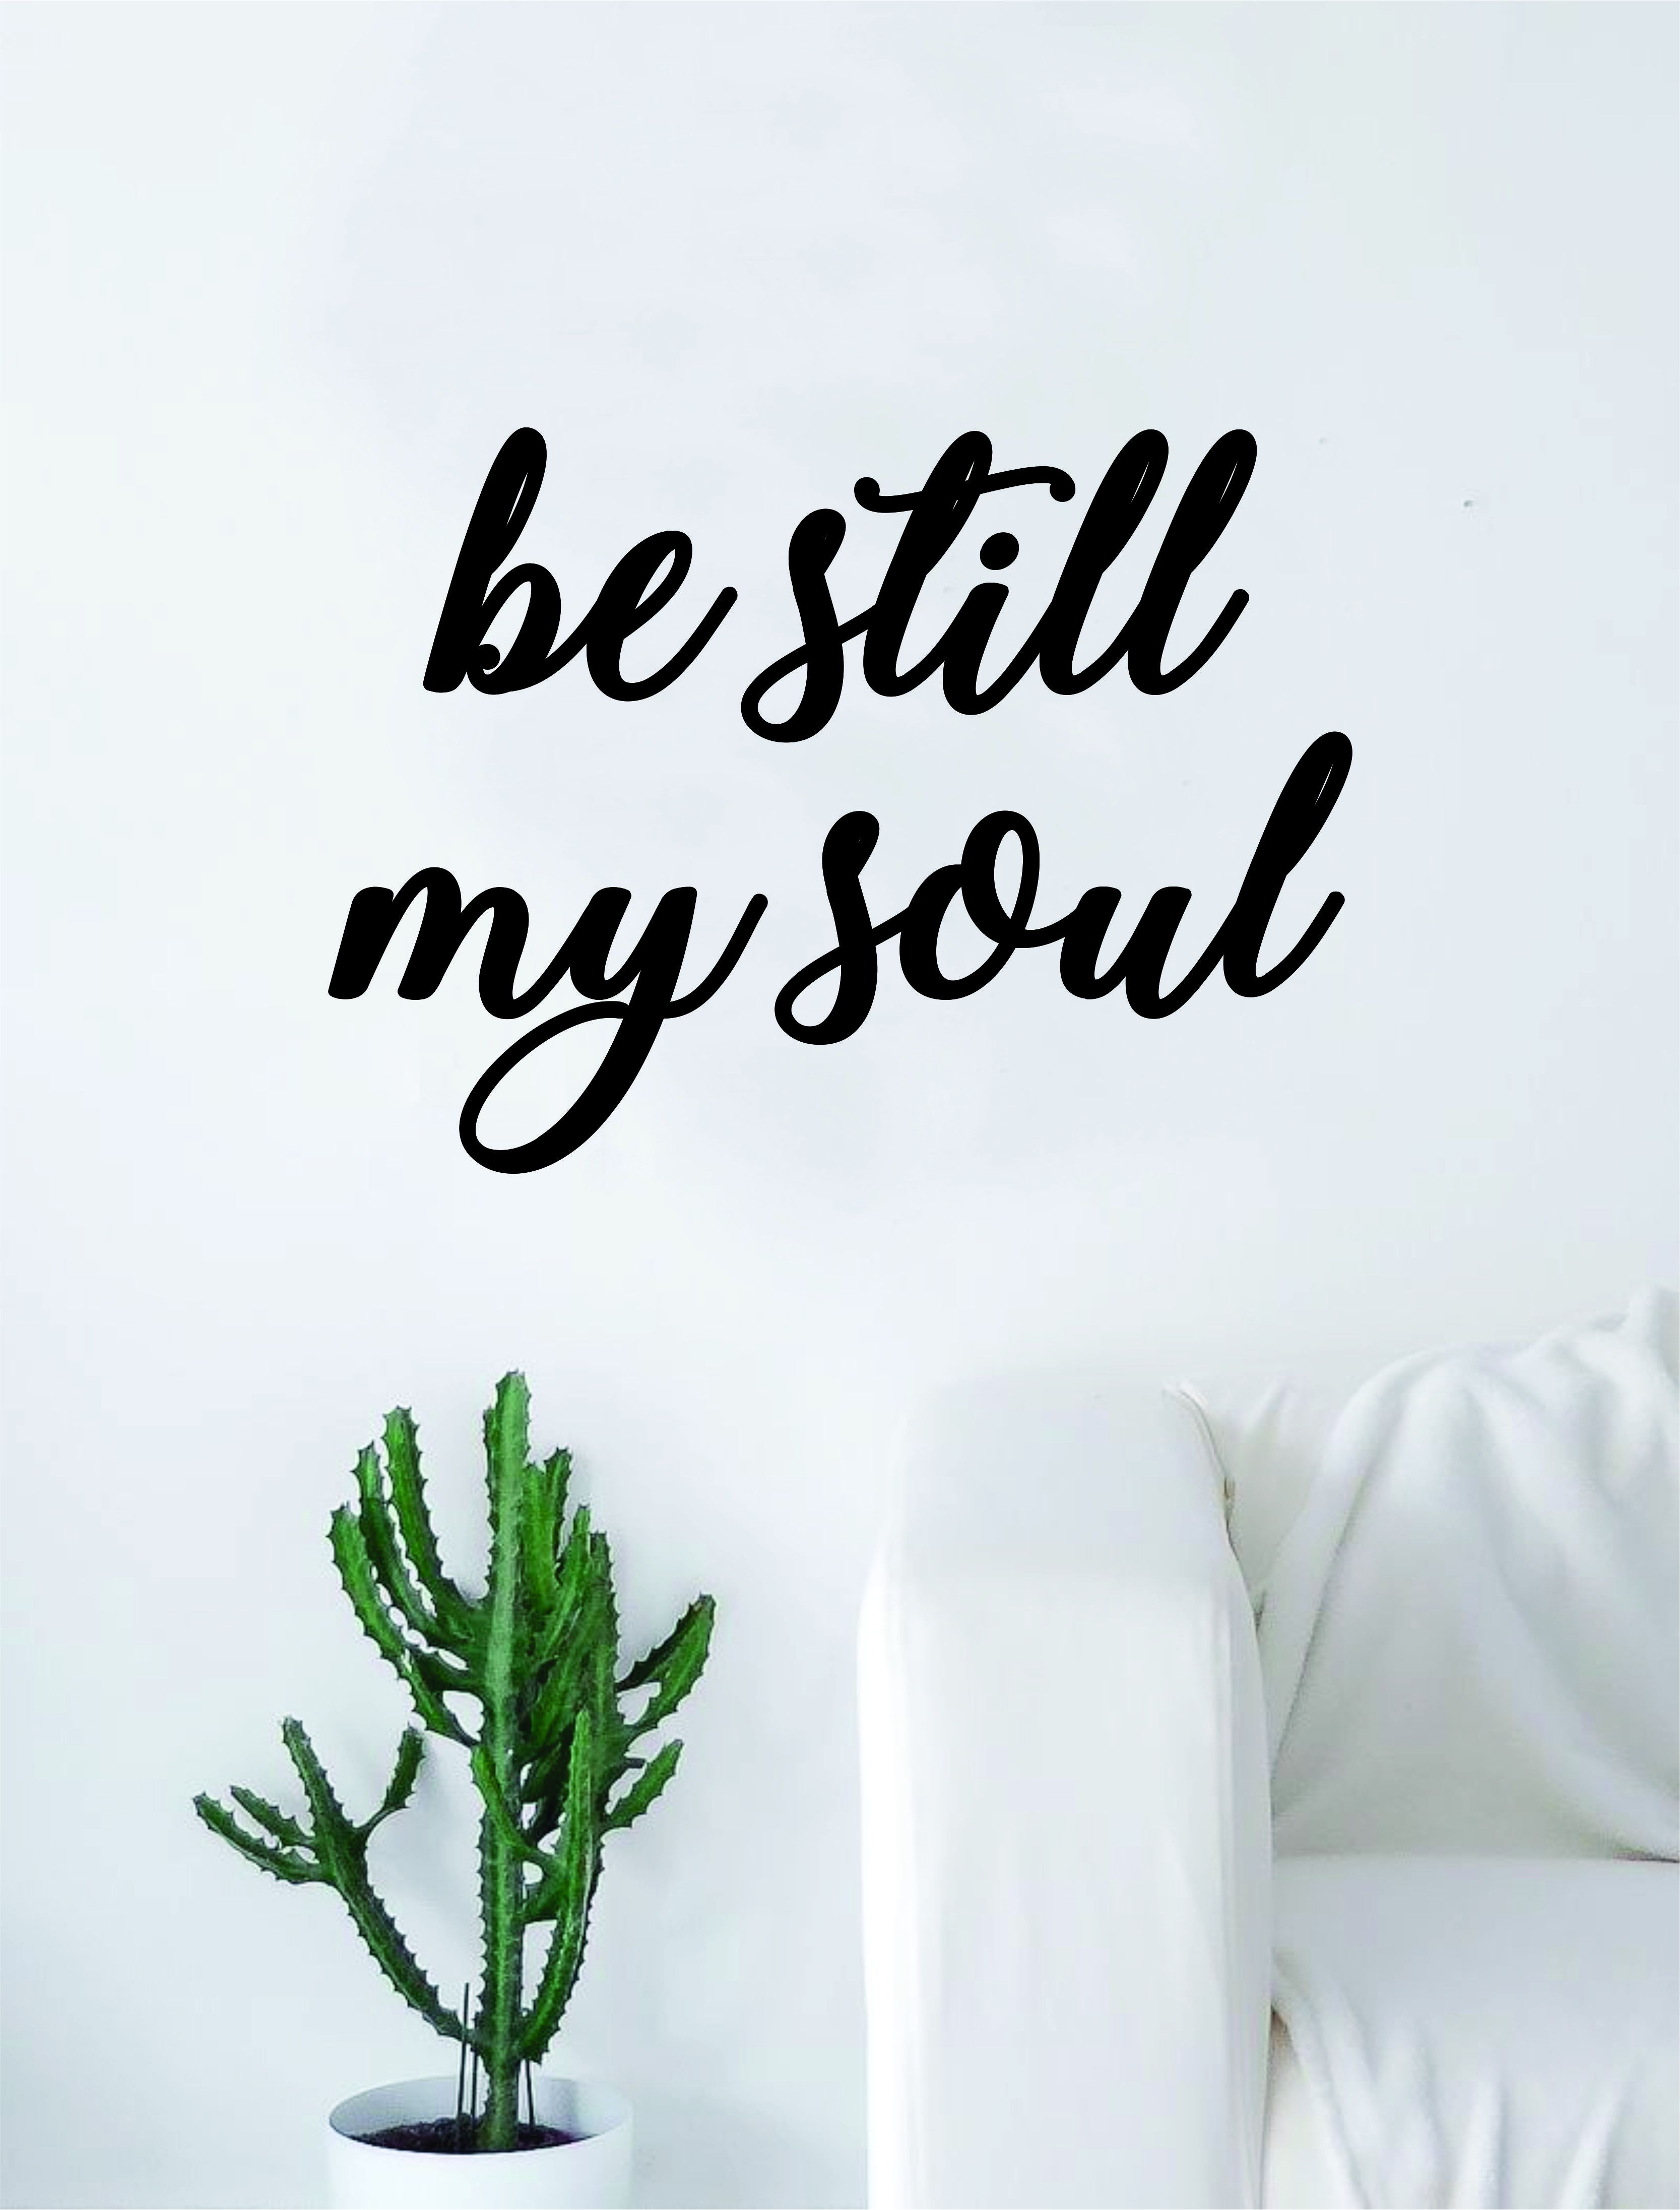 Be still my soul quote decal sticker wall vinyl art home decor